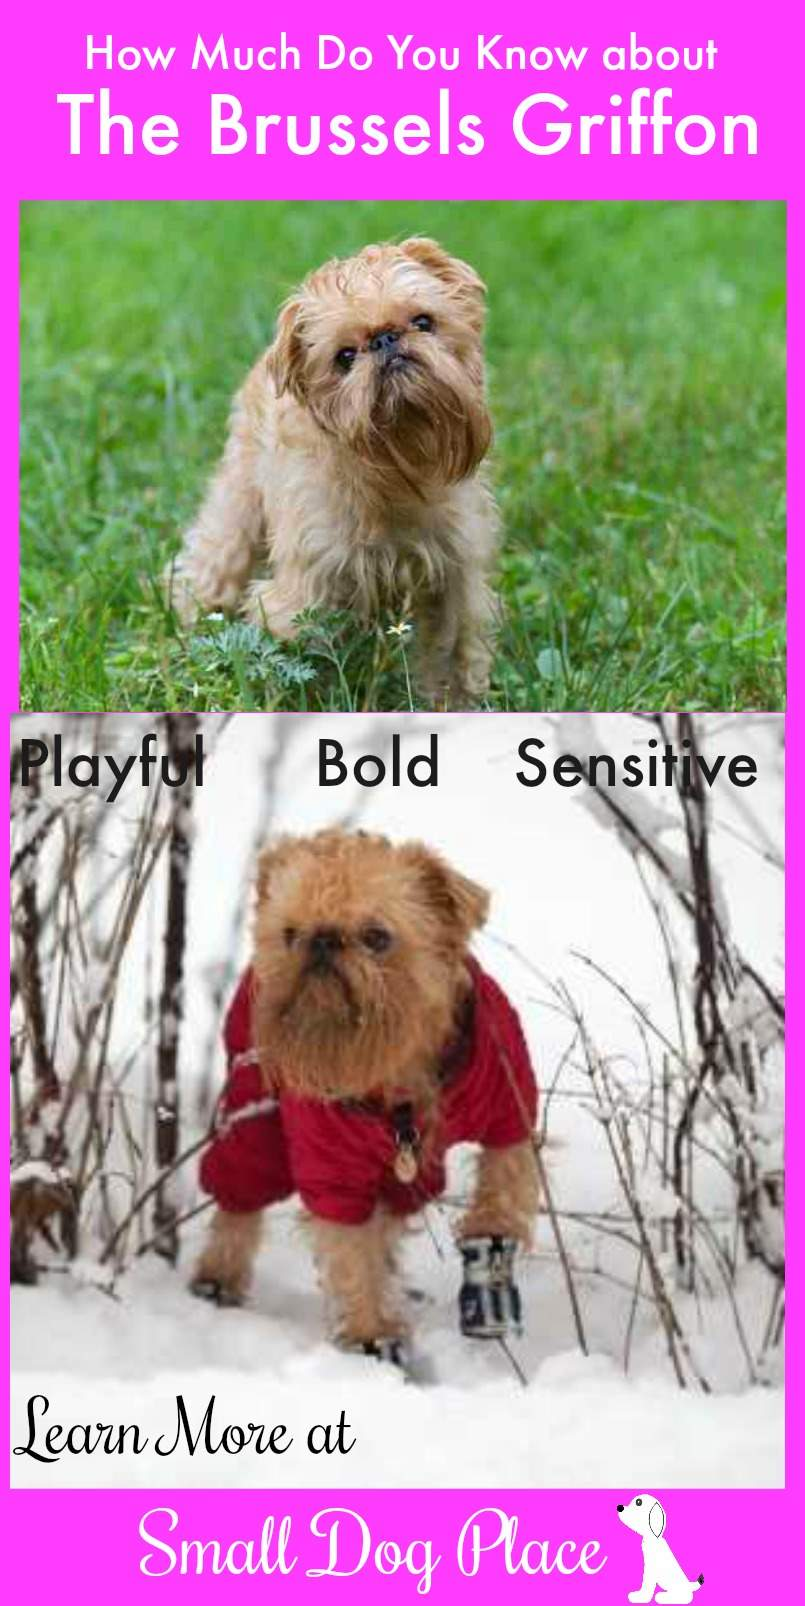 How much do you know about the Brussels Griffon?